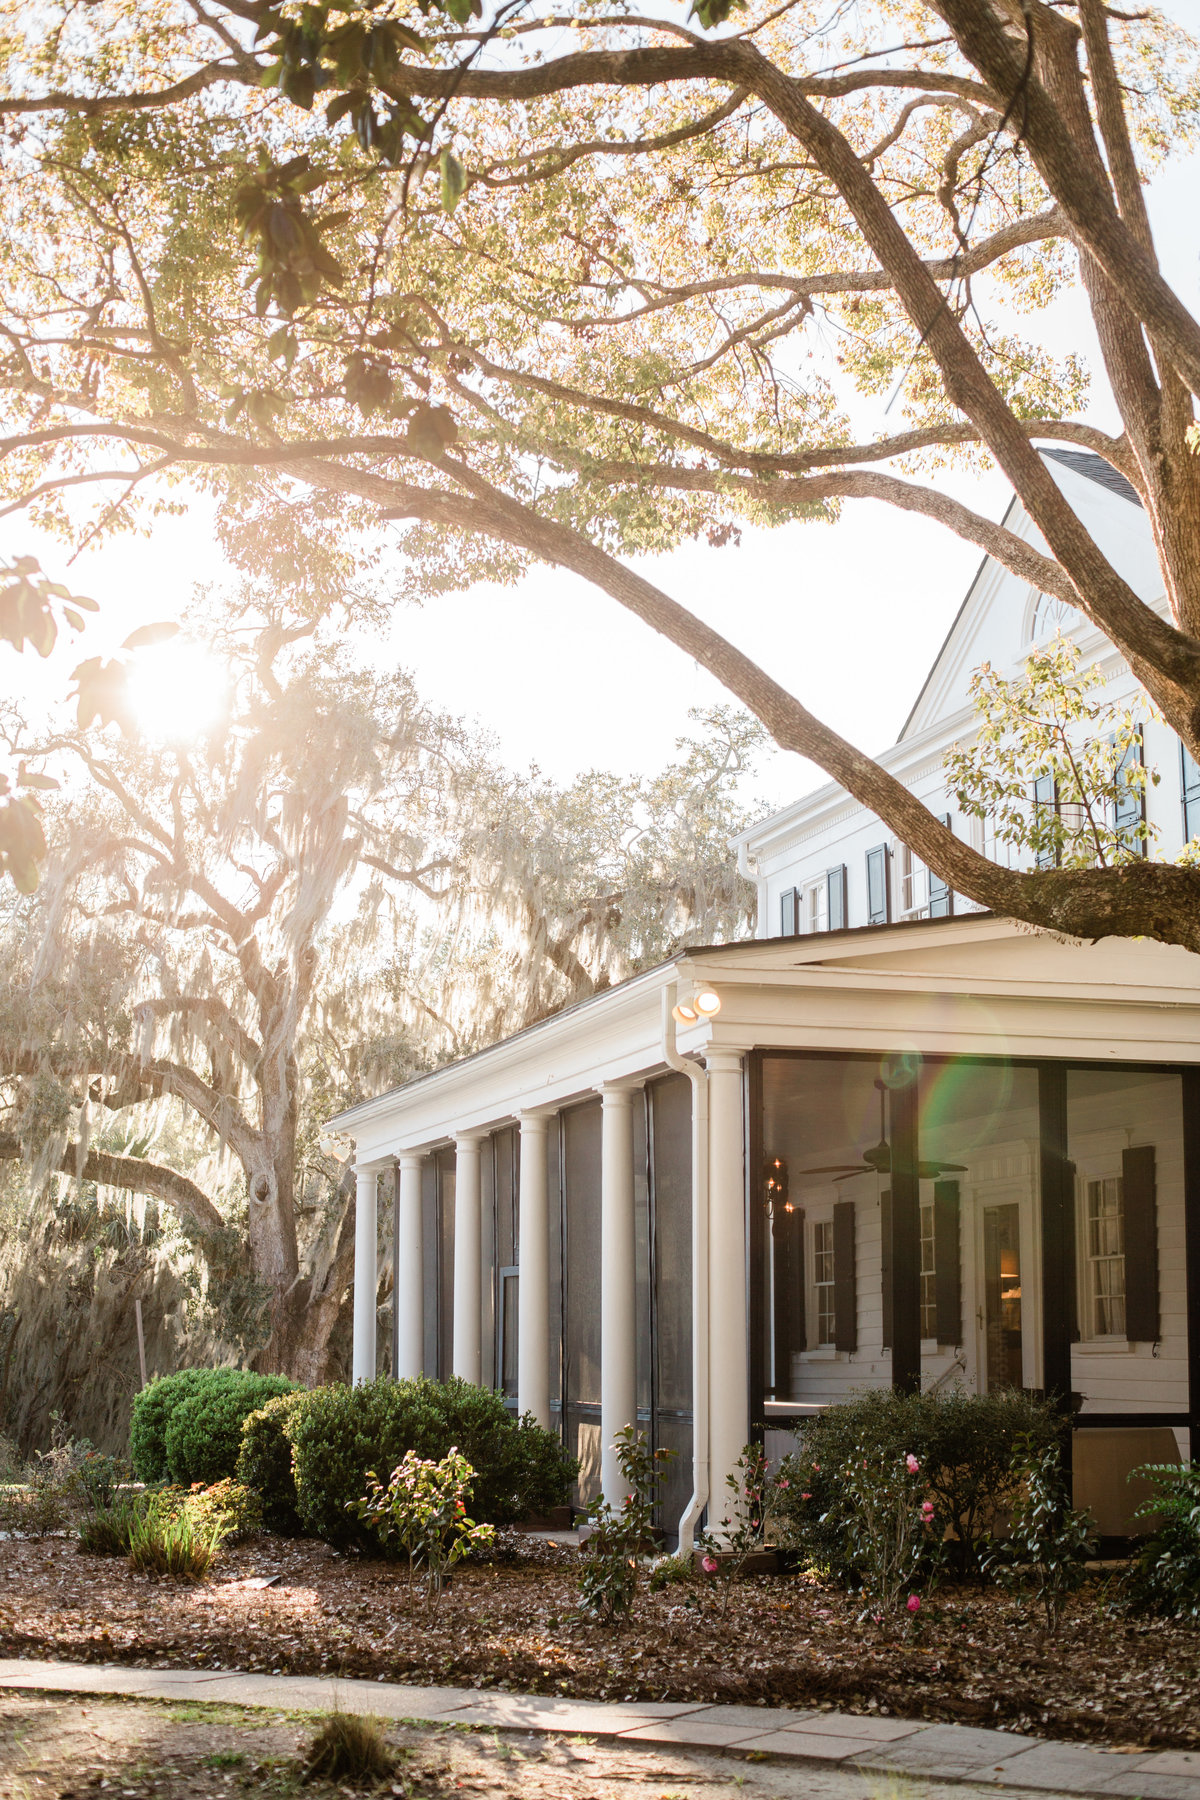 charleston-wedding-venues-Legare-waring-house-philip-casey-photography-013